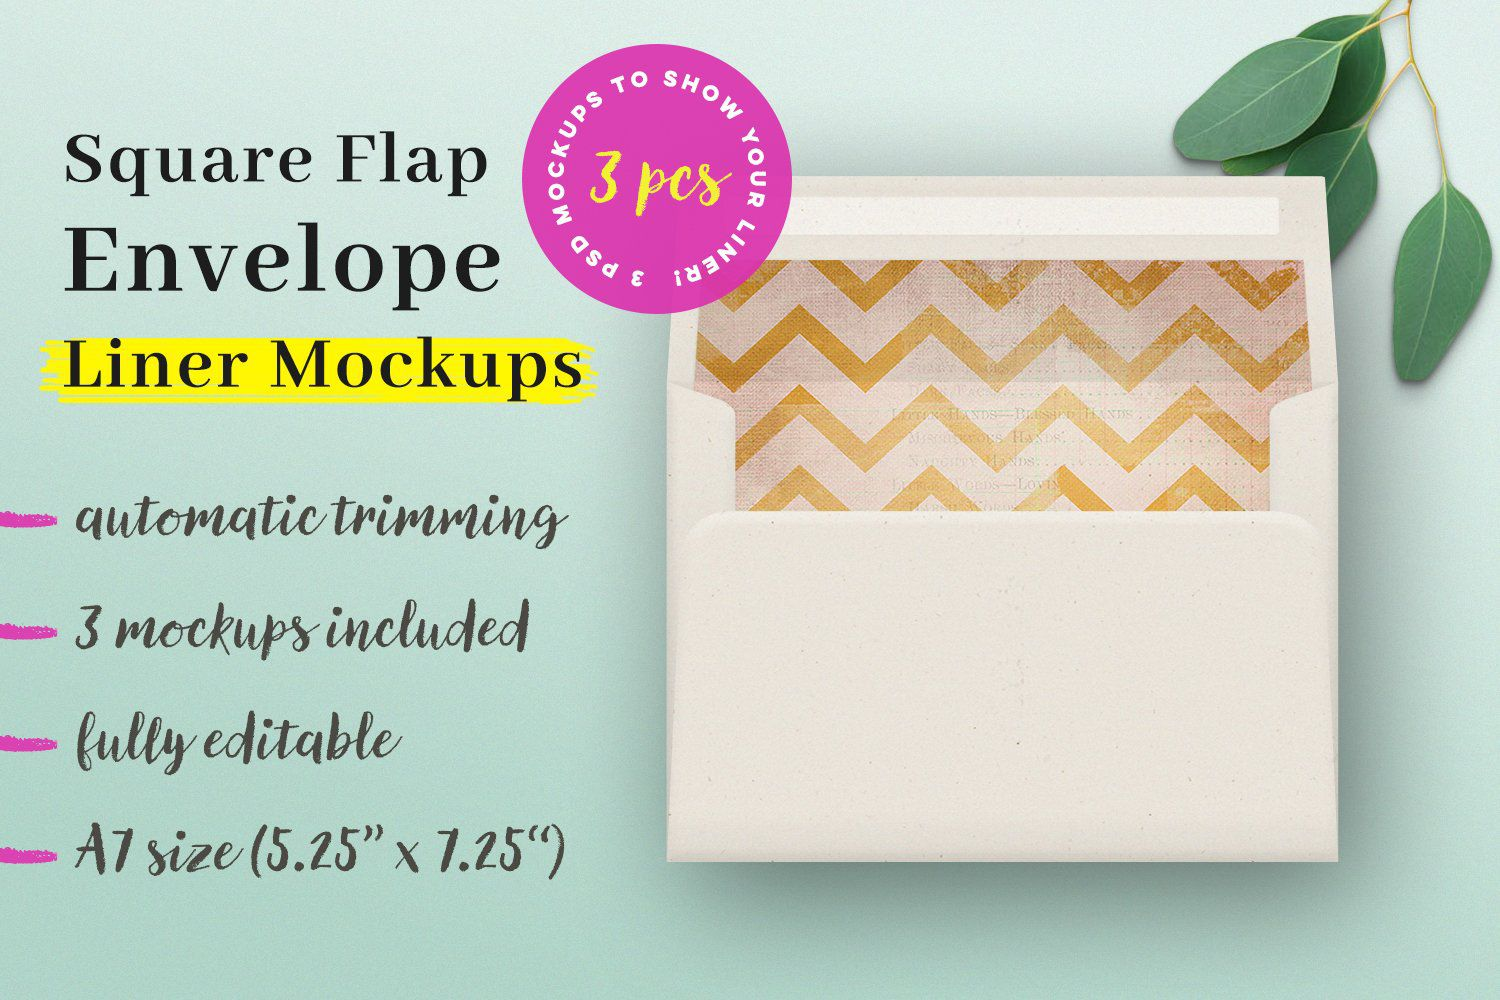 009 Unique A7 Envelope Liner Template Square Flap High Resolution Full